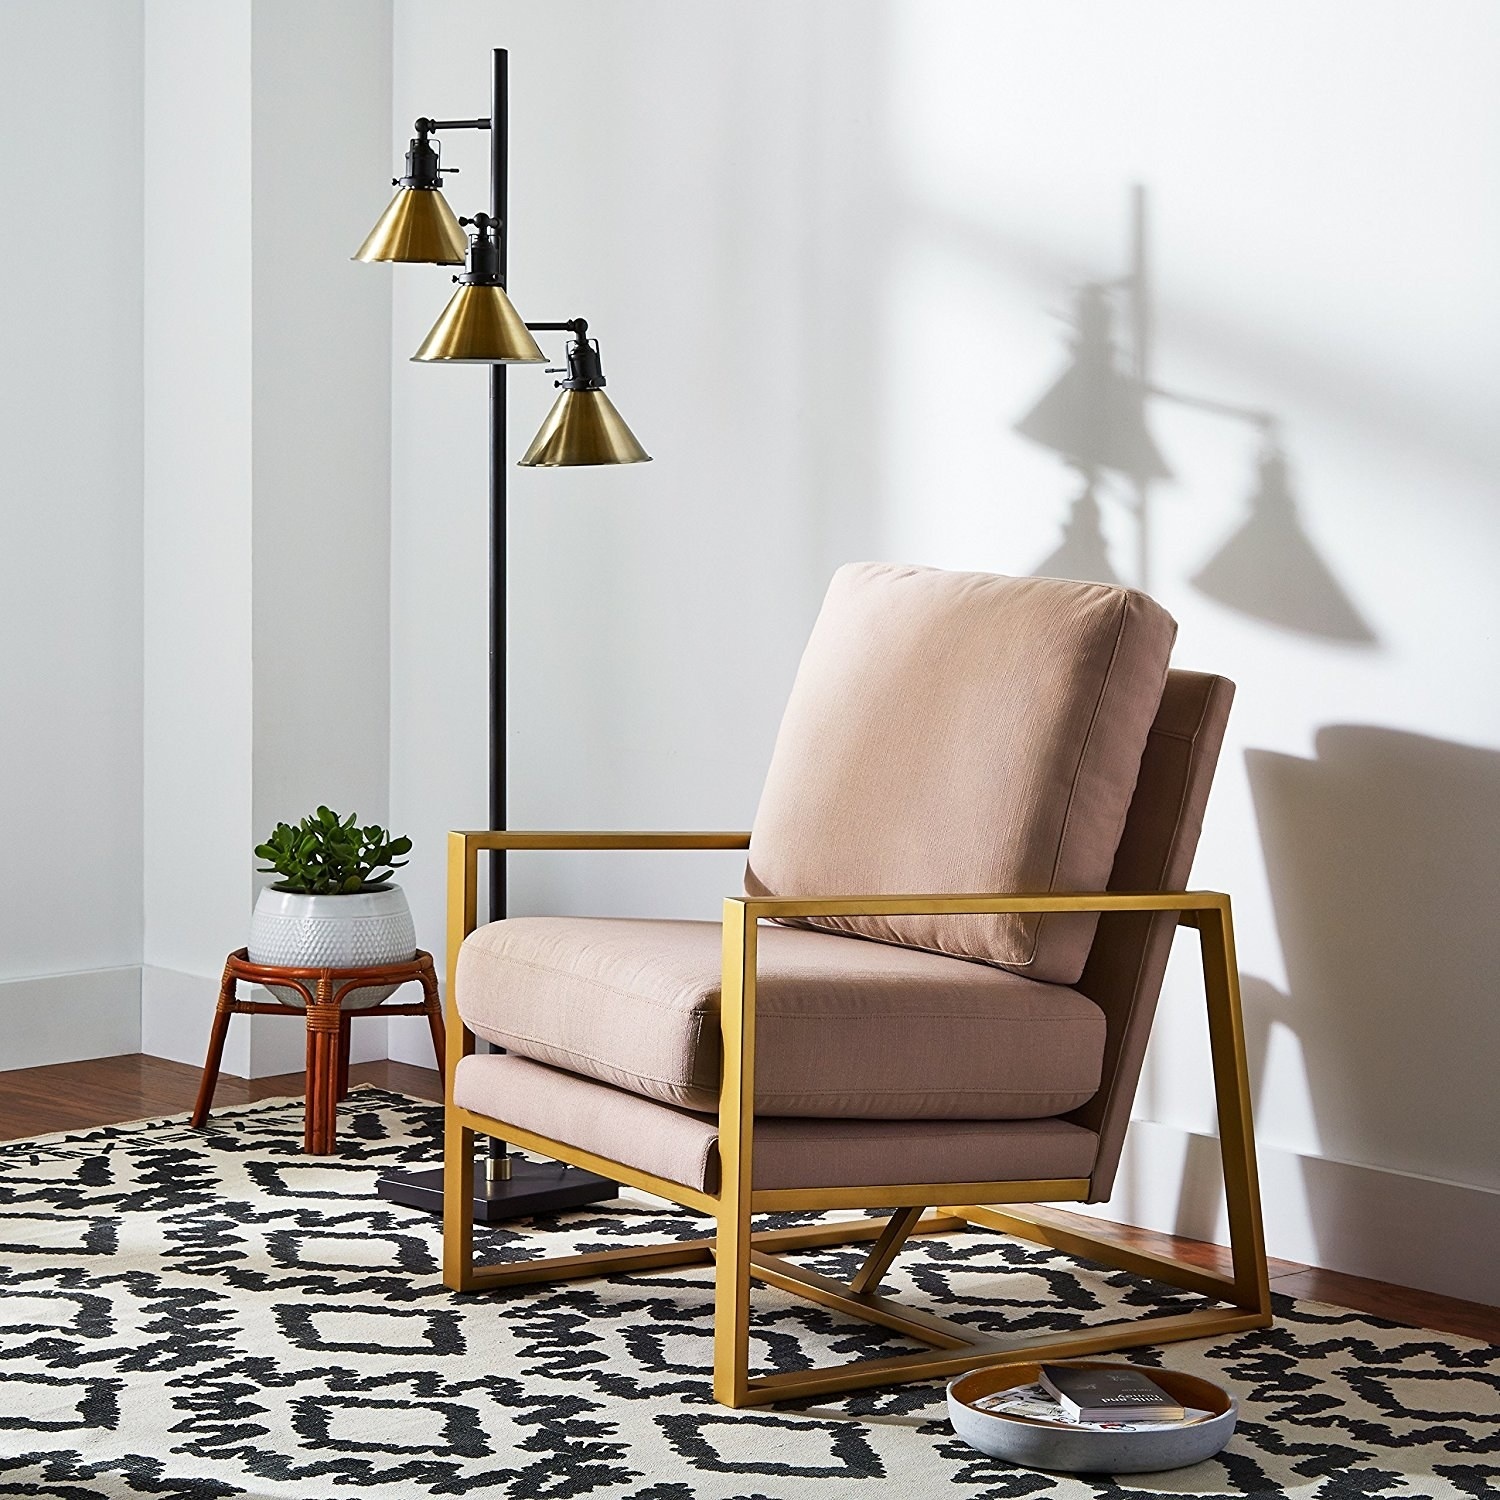 The Amazon Brand Rivet Charlotte mid-century modern upholstered gold accent chair in dusty rose.